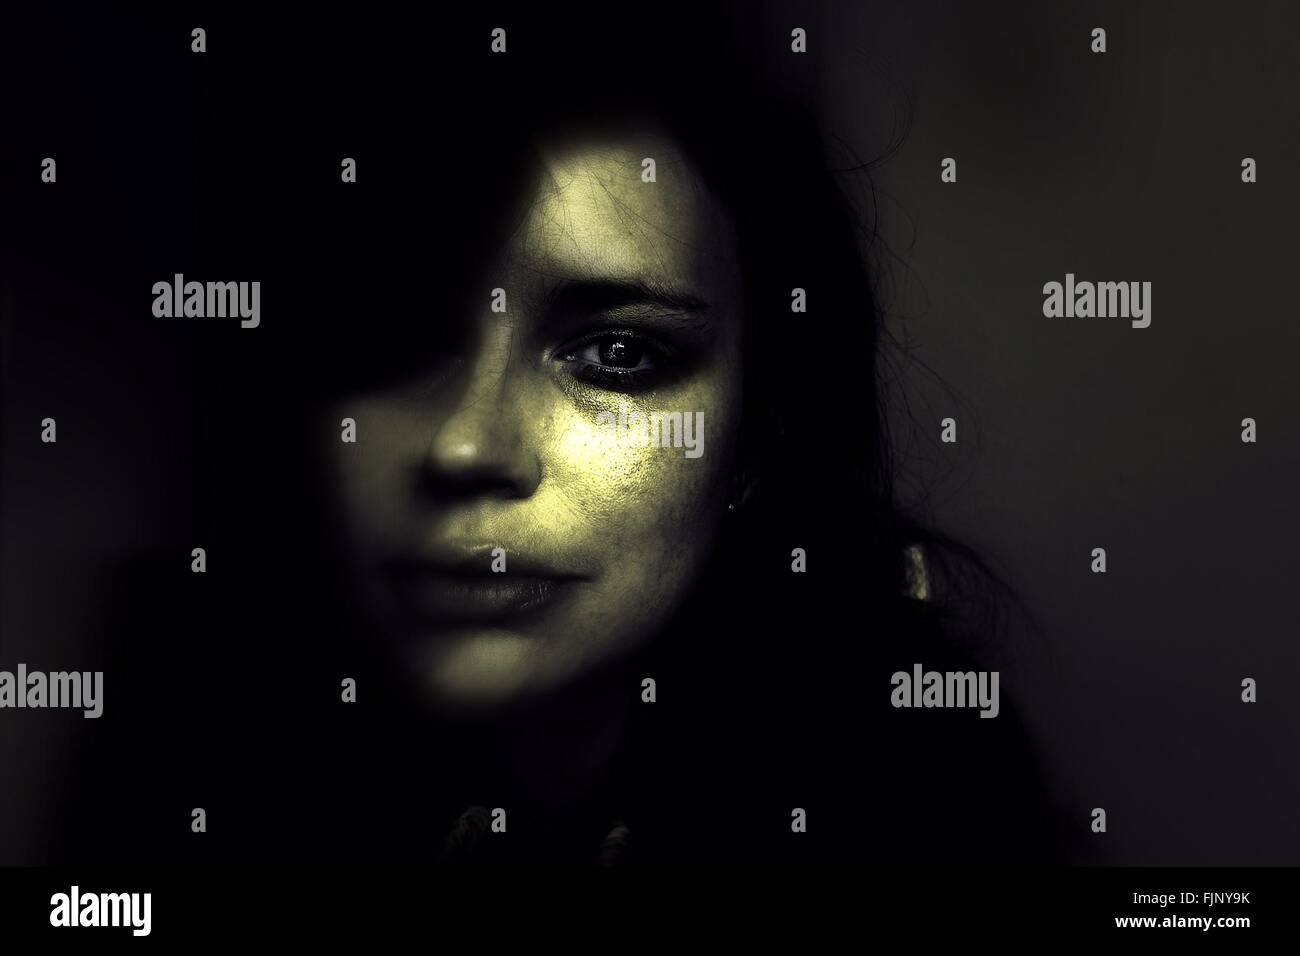 Close-Up Portrait Of Sad Woman In Darkroom - Stock Image